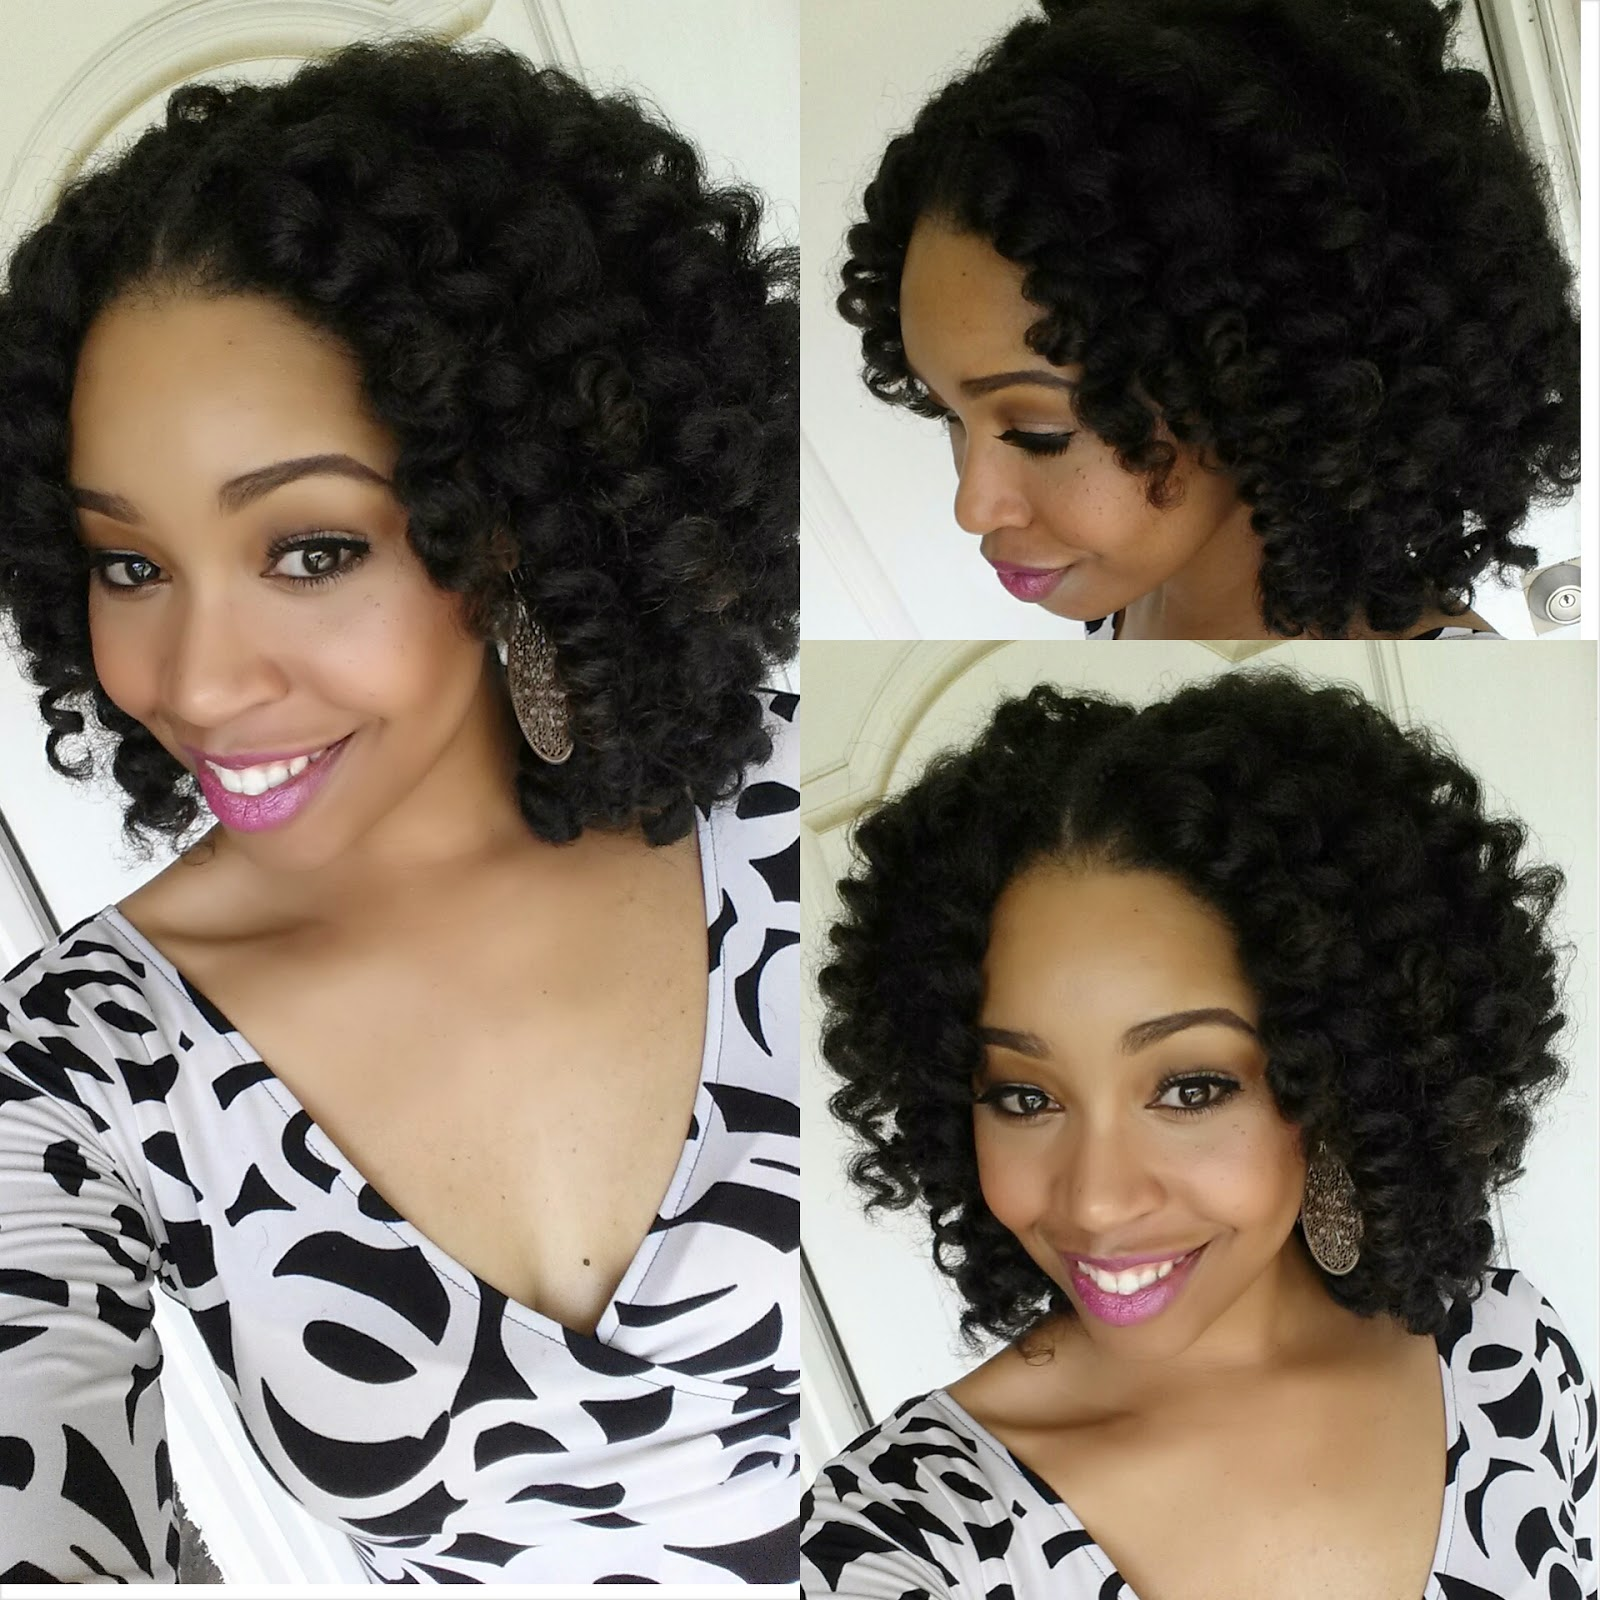 Astonishing Crochet Braids With Marley Hair Protective Style Tutorial Short Hairstyles For Black Women Fulllsitofus